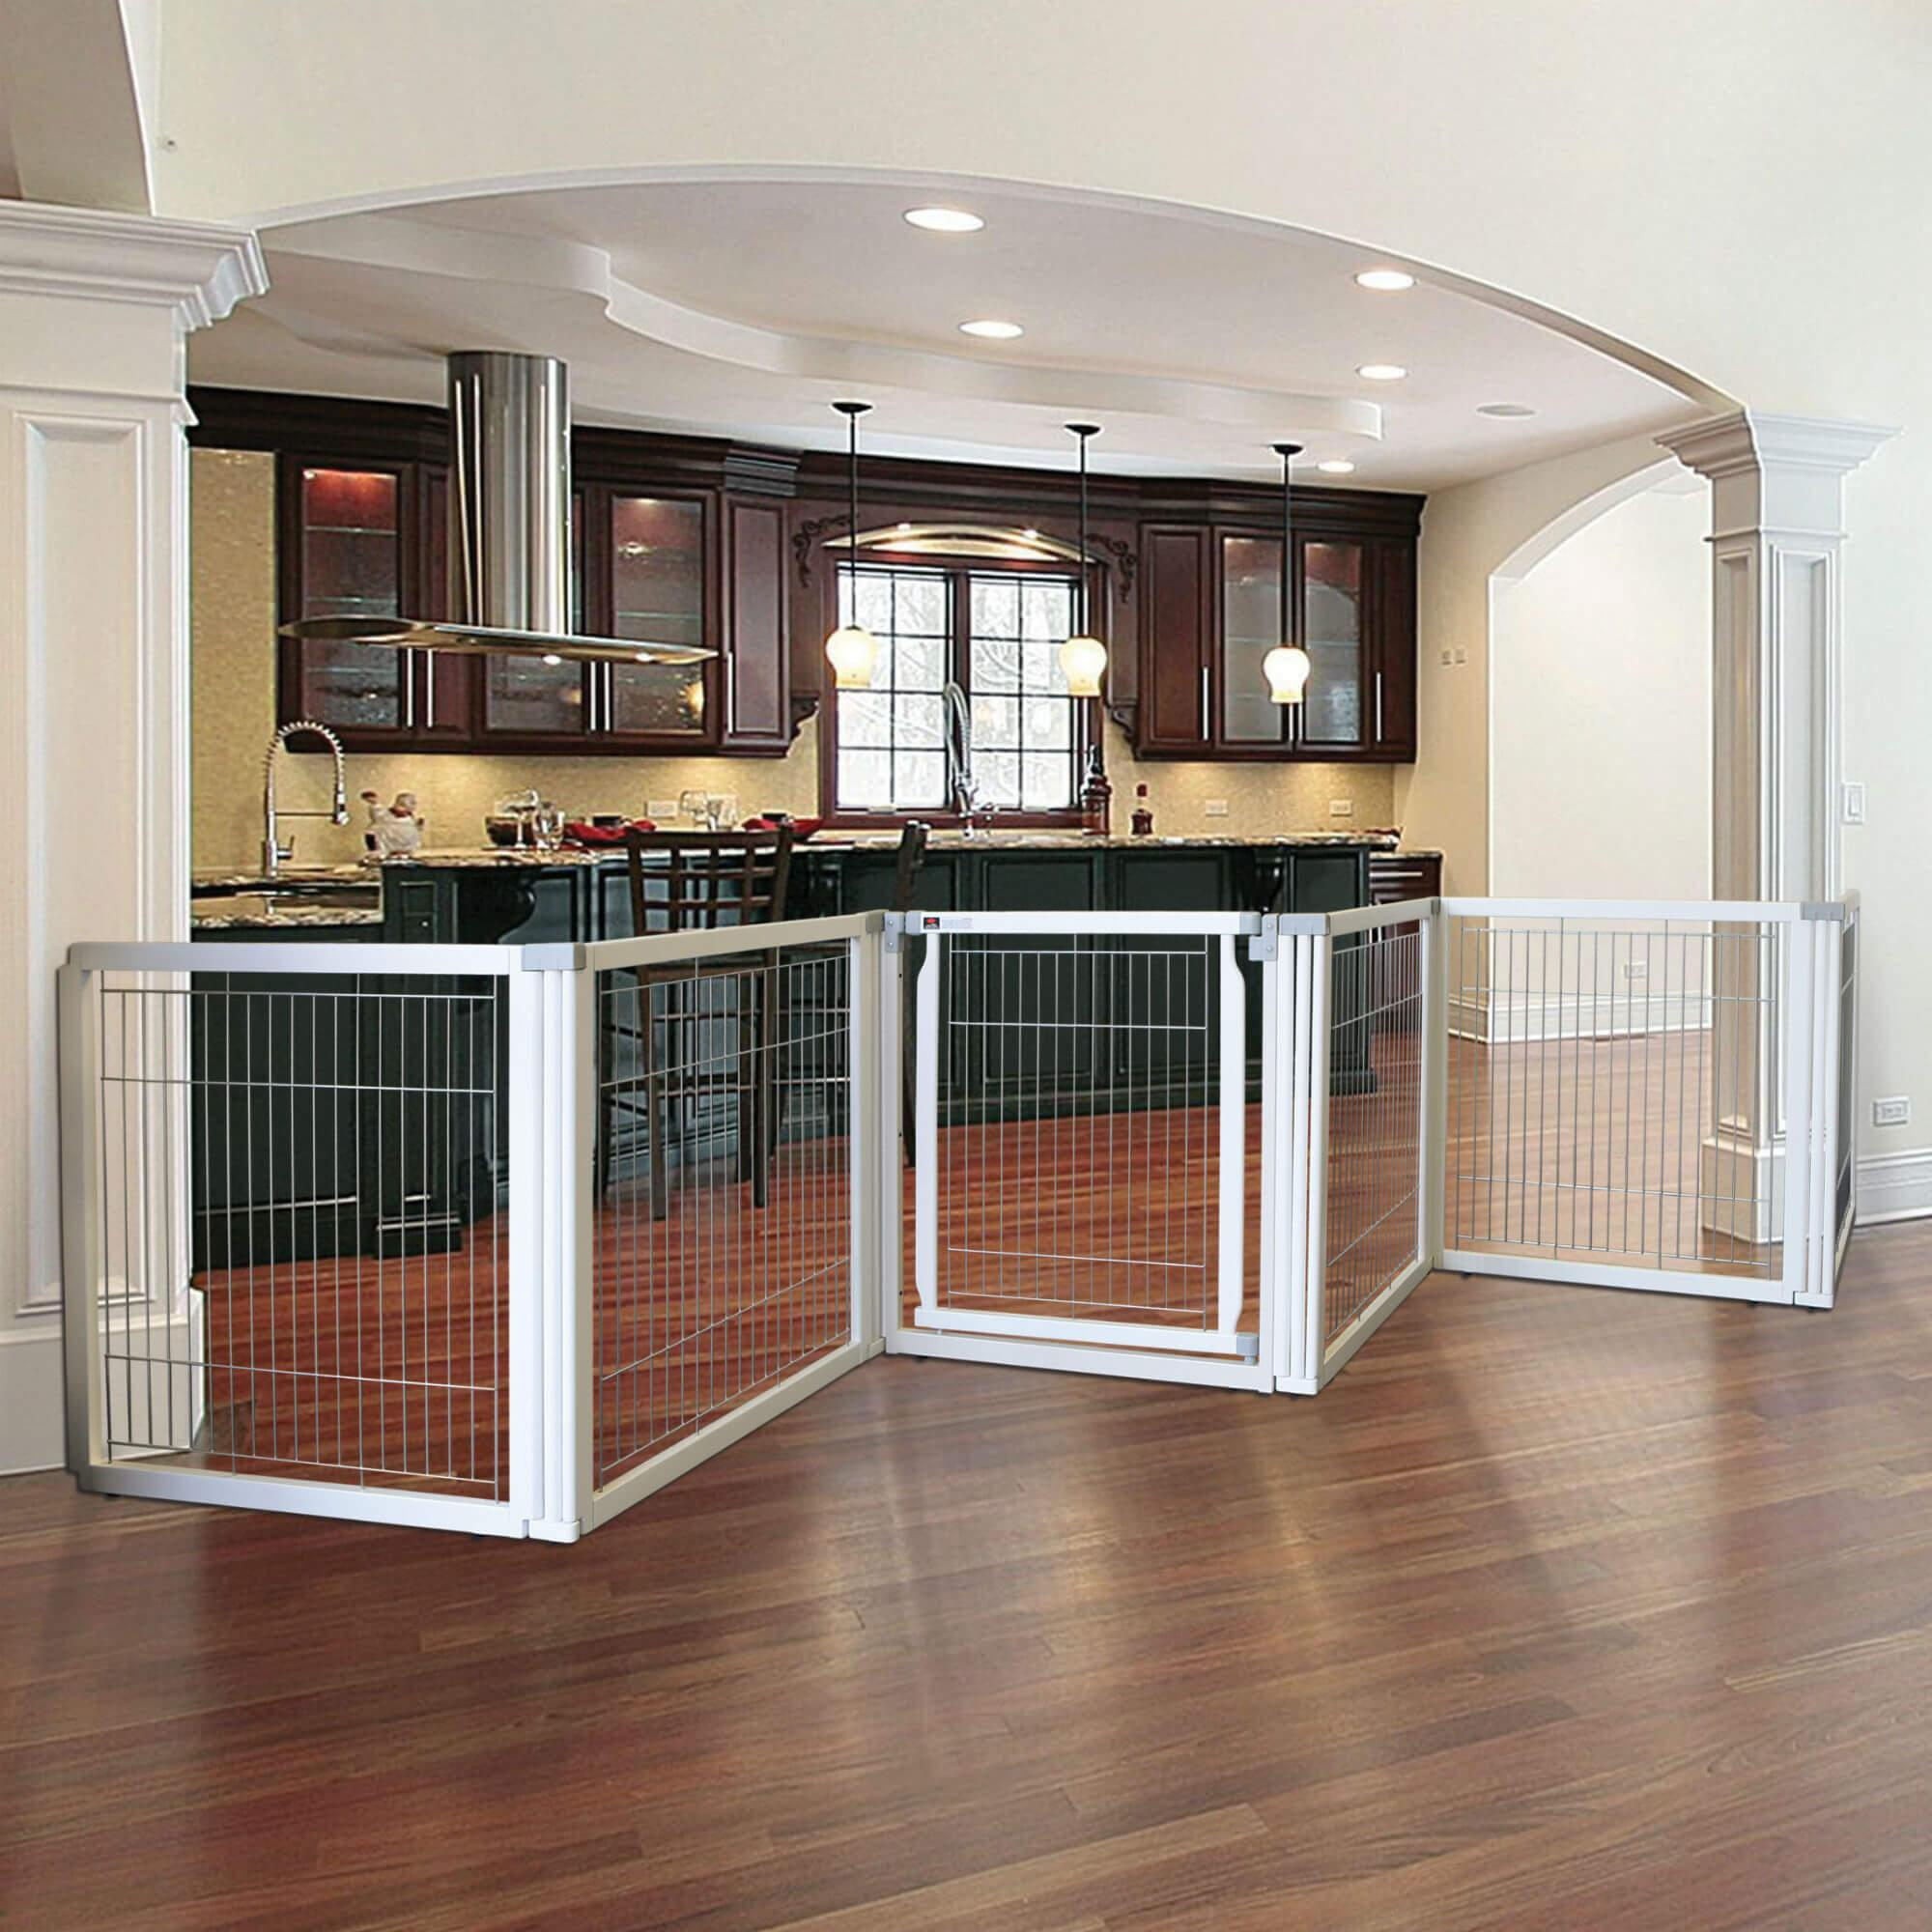 Convertible Elite Dog Gate - 6 Panel - Origami White